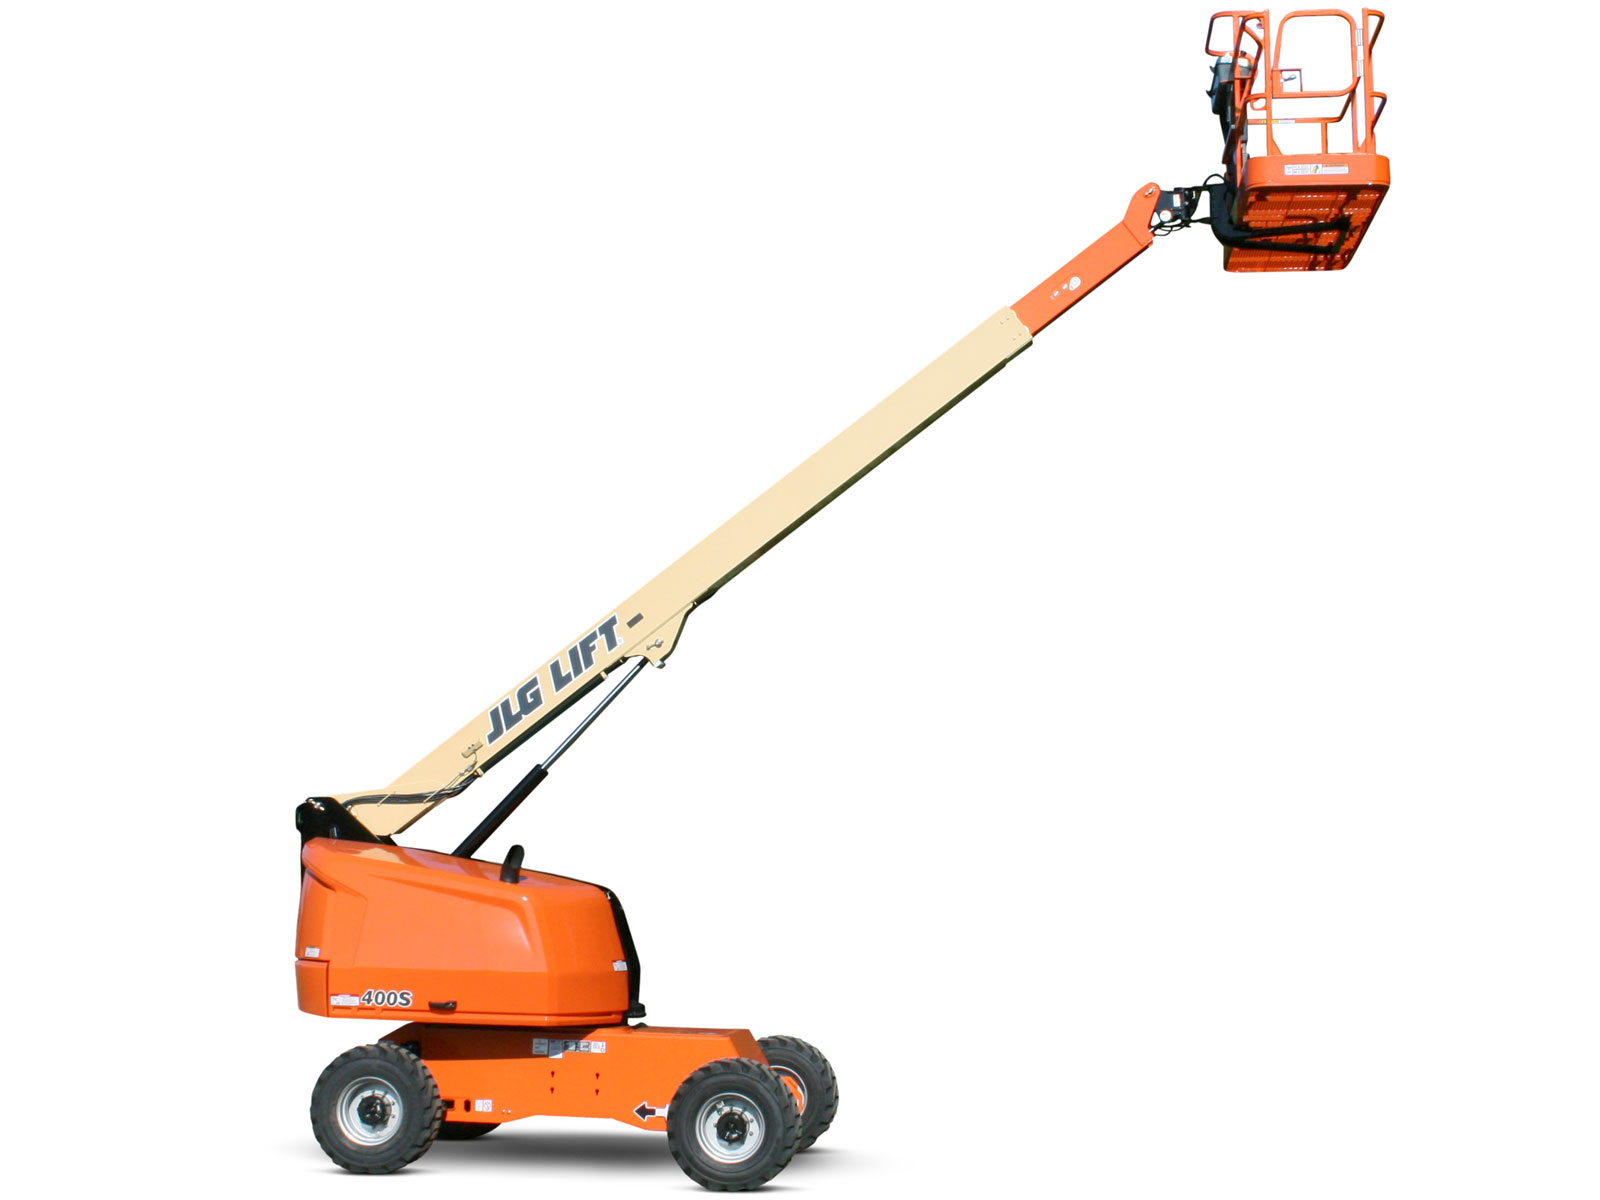 400s gallery silo?w=100 400s telescopic boom lift jlg jlg 40h wiring diagram at edmiracle.co